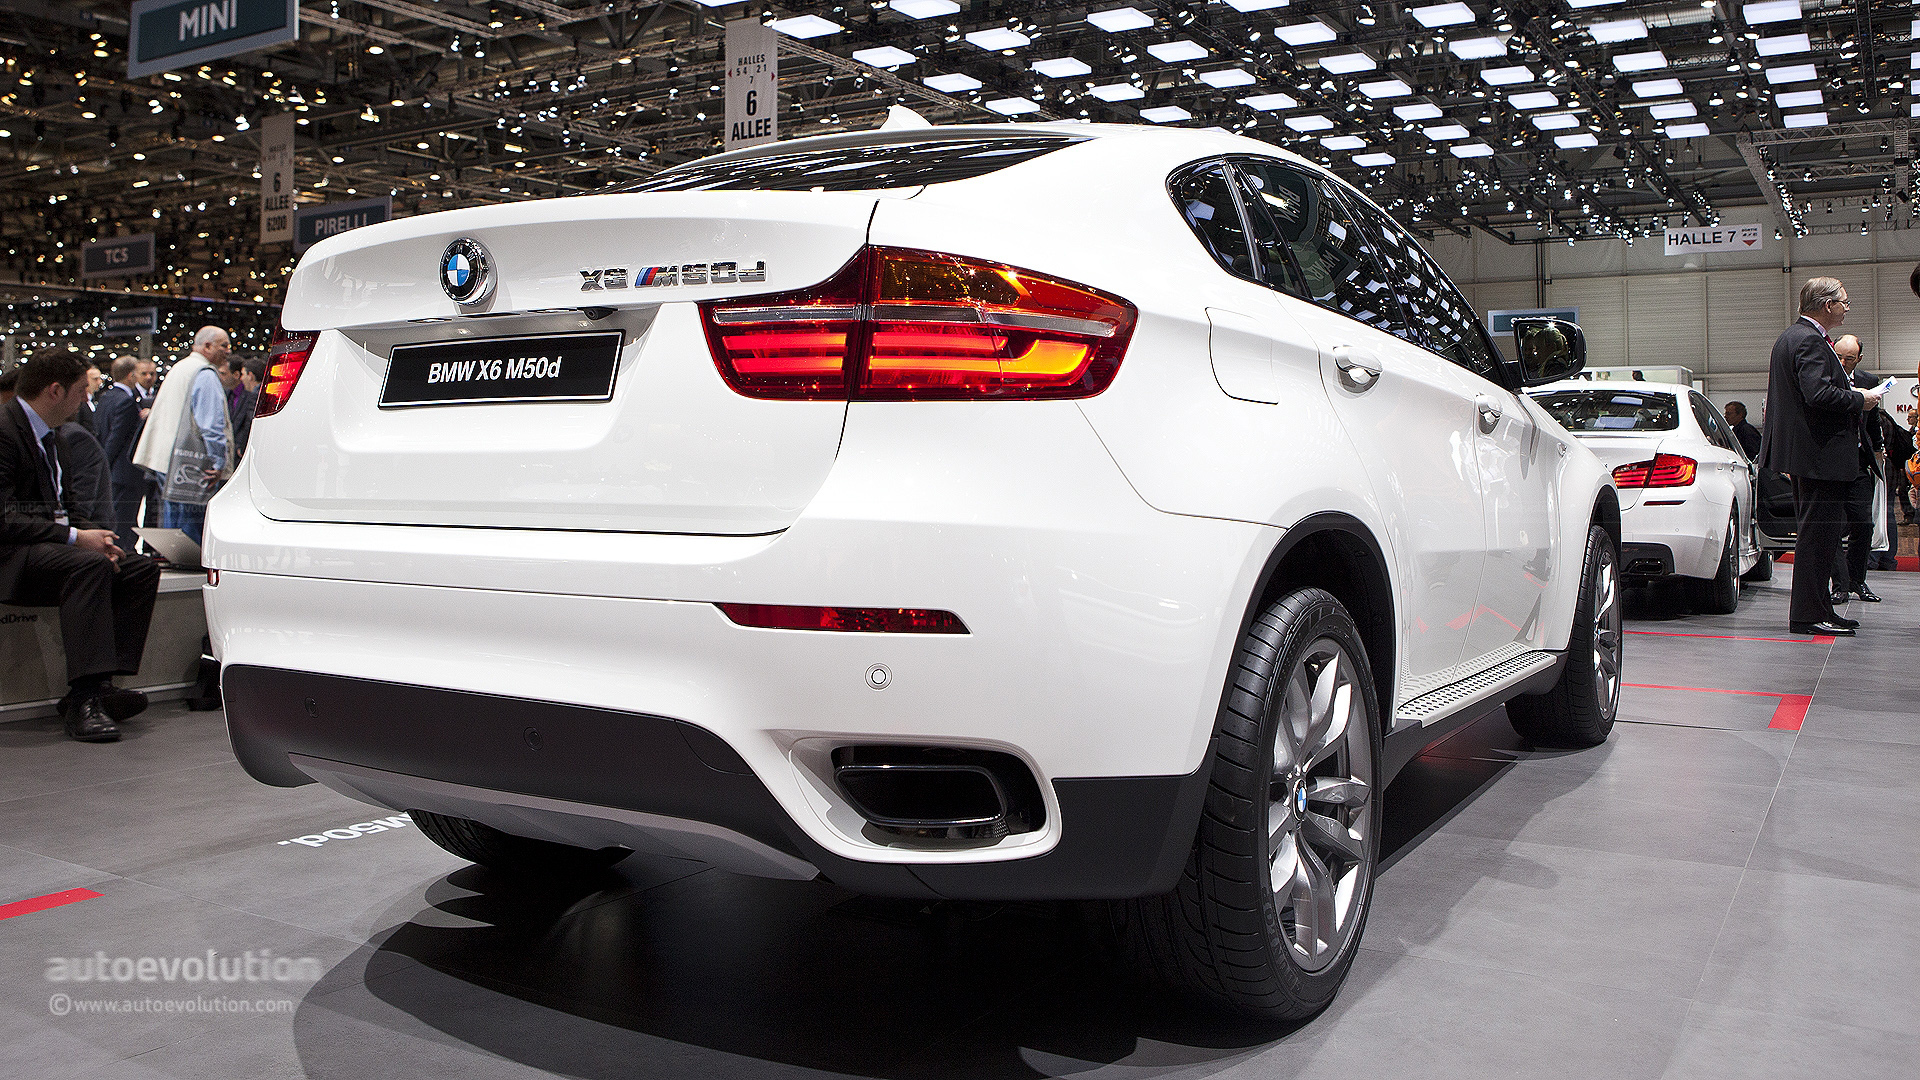 Geneva 2012 Bmw X6 M50d Super Diesel Live Photos